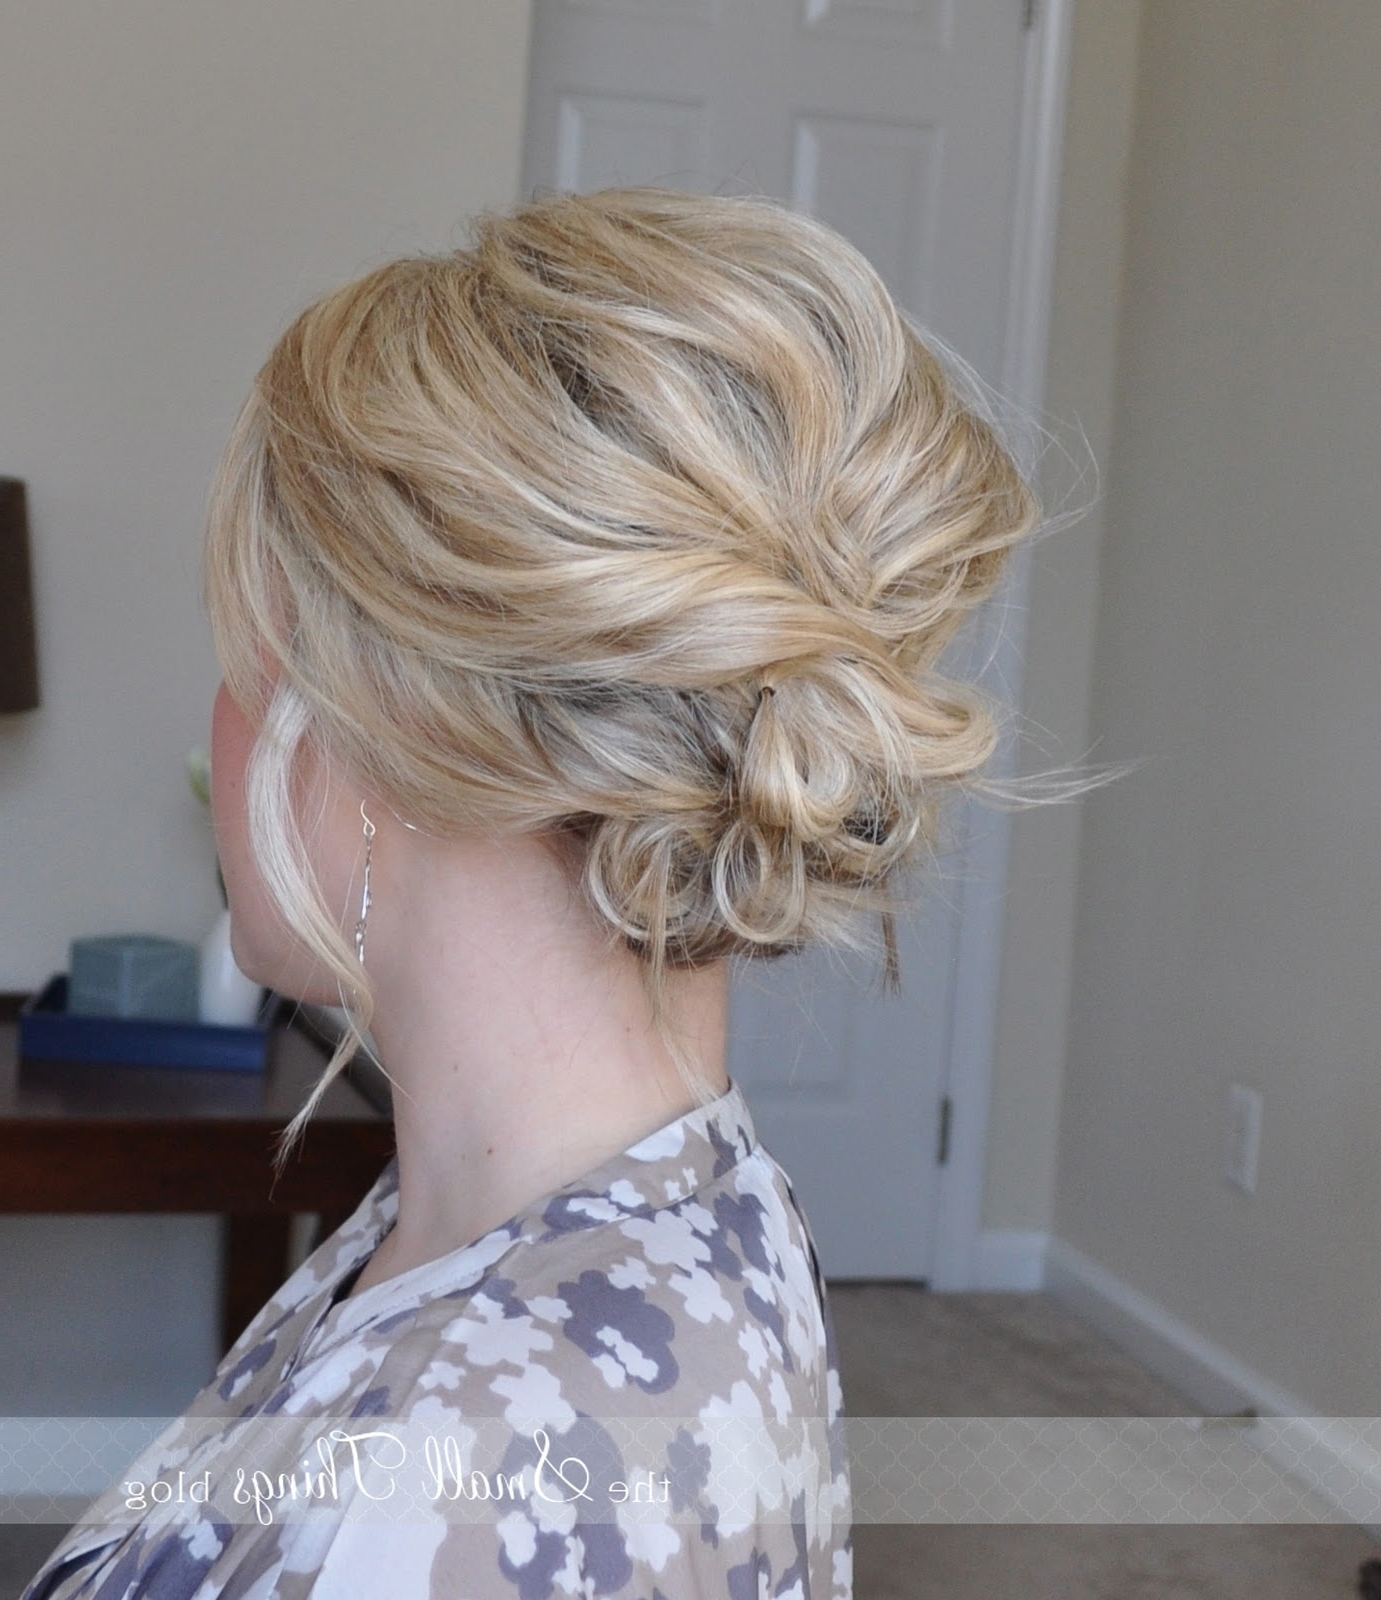 Beach Wedding Hairstyles For Medium Length Hair – Hairstyle For With Regard To Current Wedding Hairstyles For Medium Length Thin Hair (View 2 of 15)